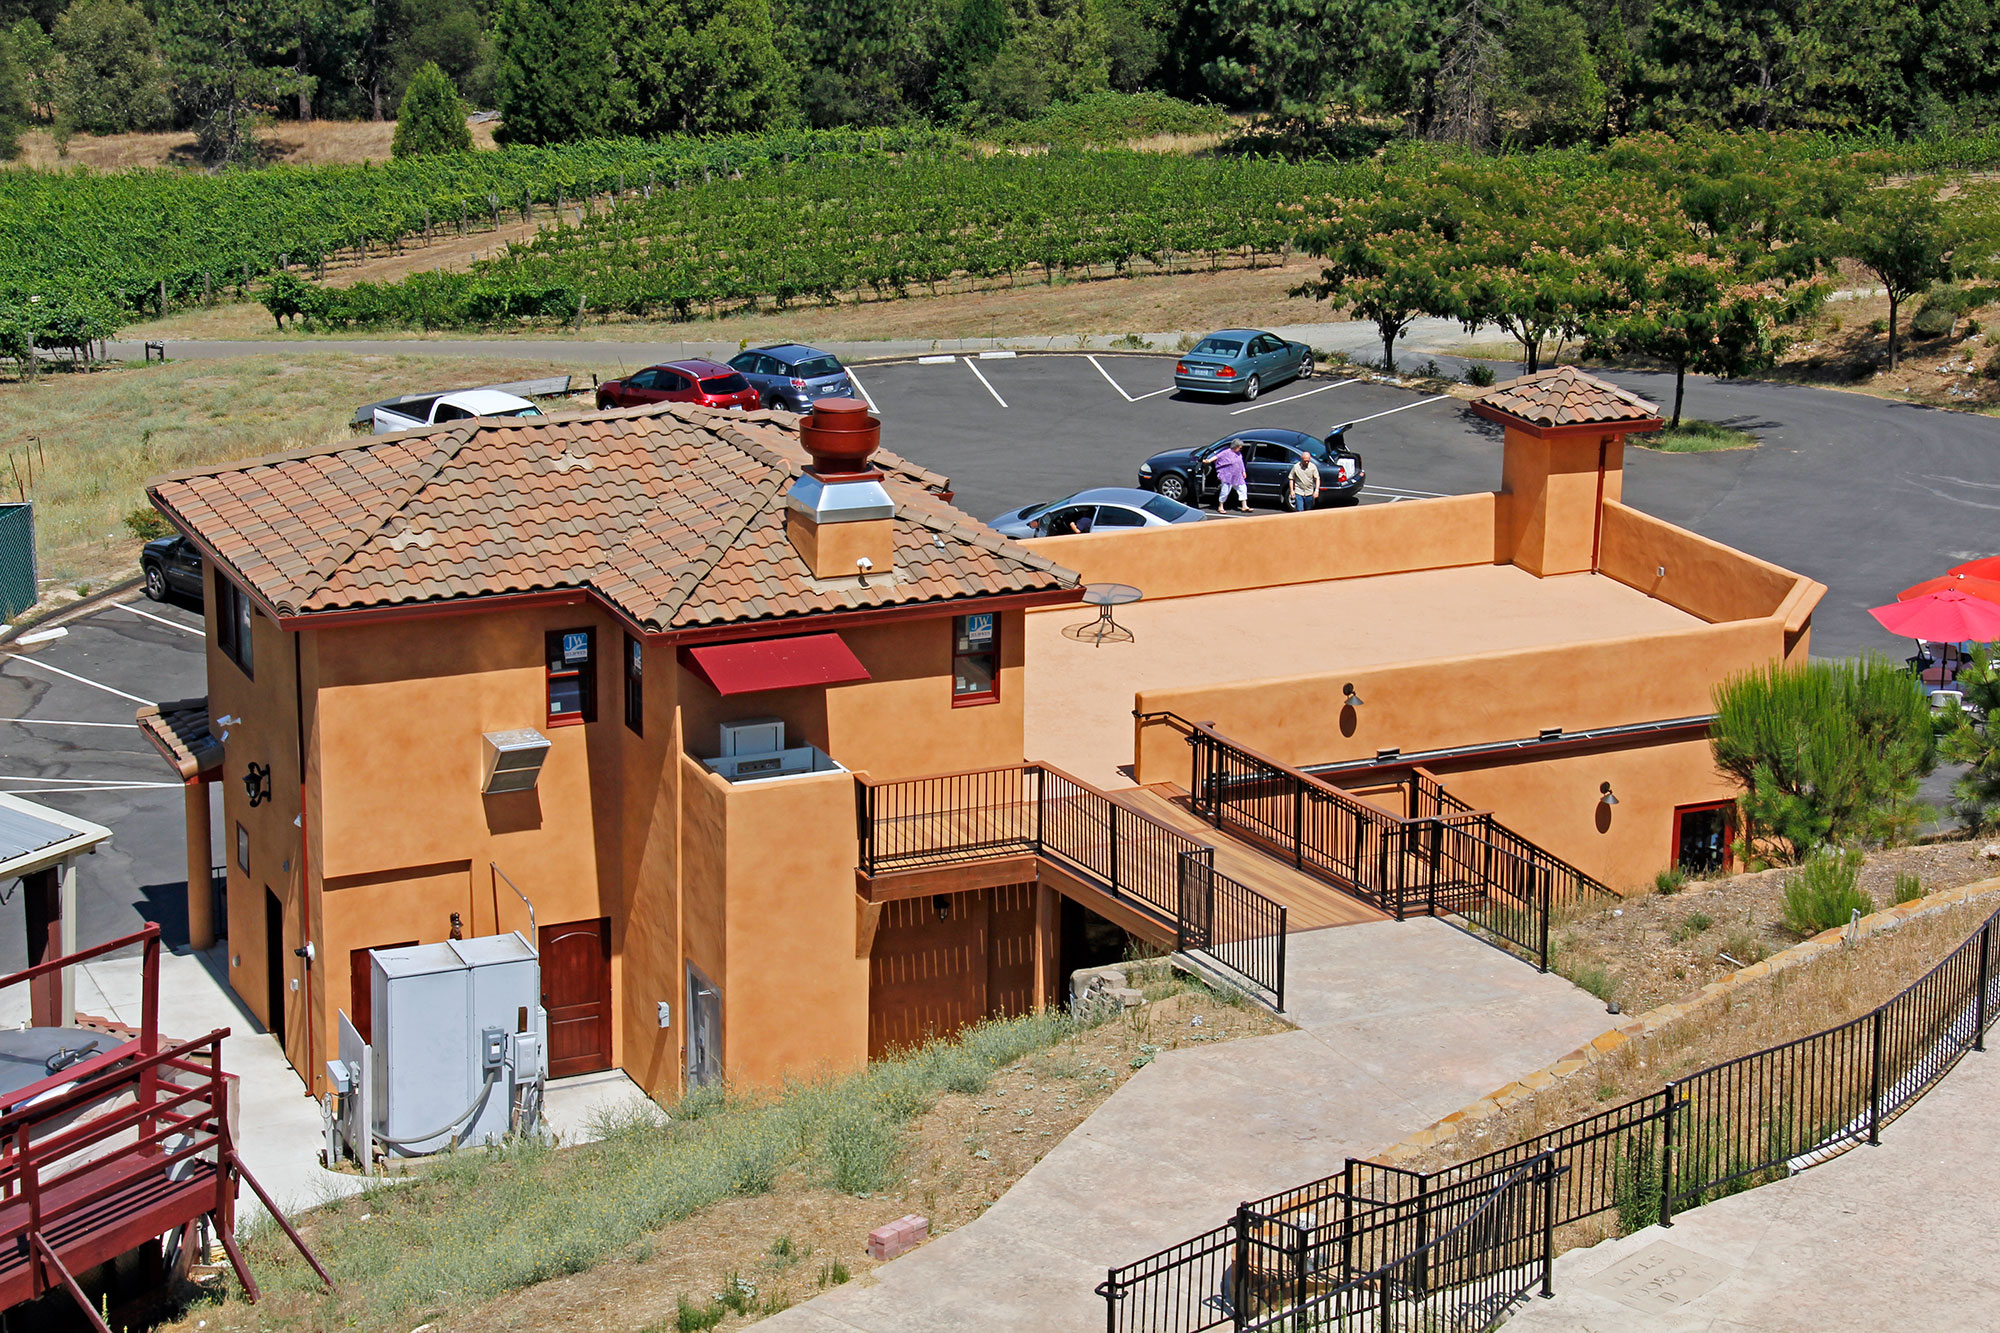 Two Story winery event center with a commercial kitchen